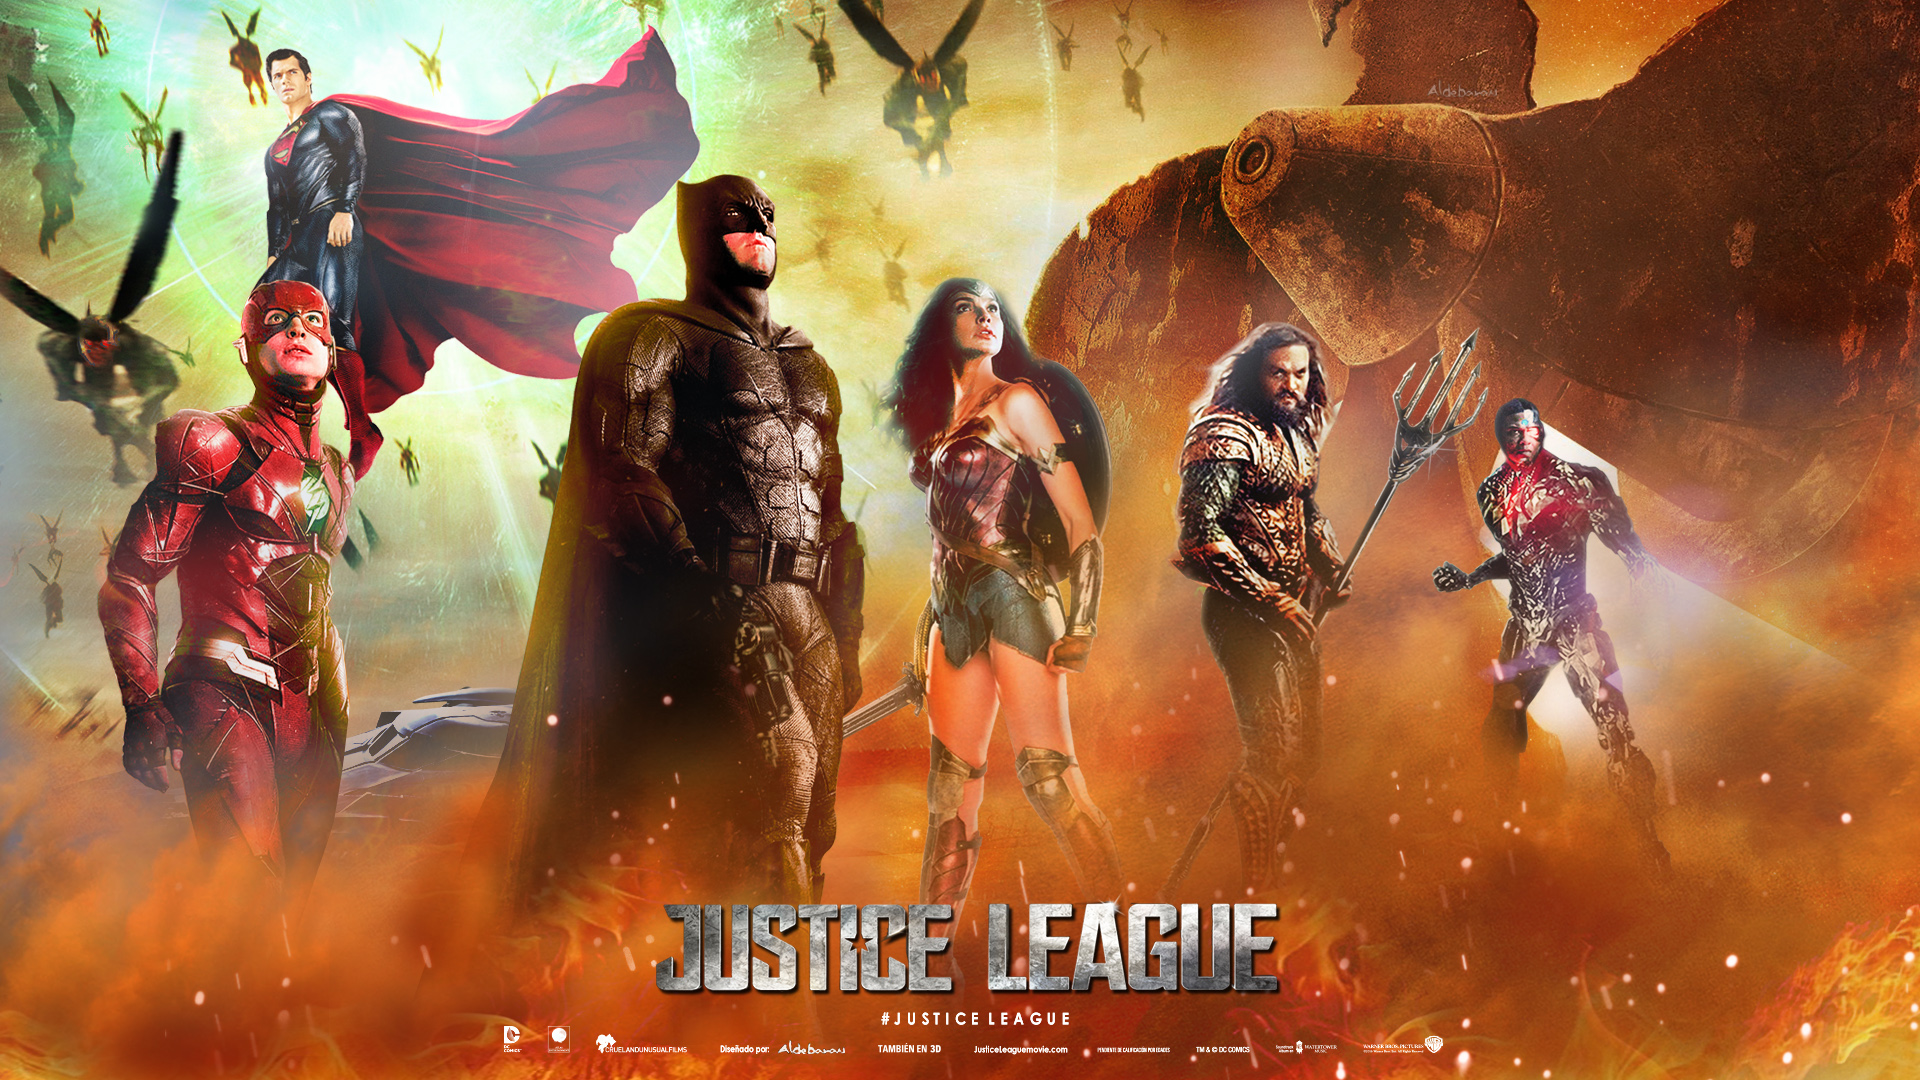 justice league film 2017 wallpapers 54 wallpapers � hd